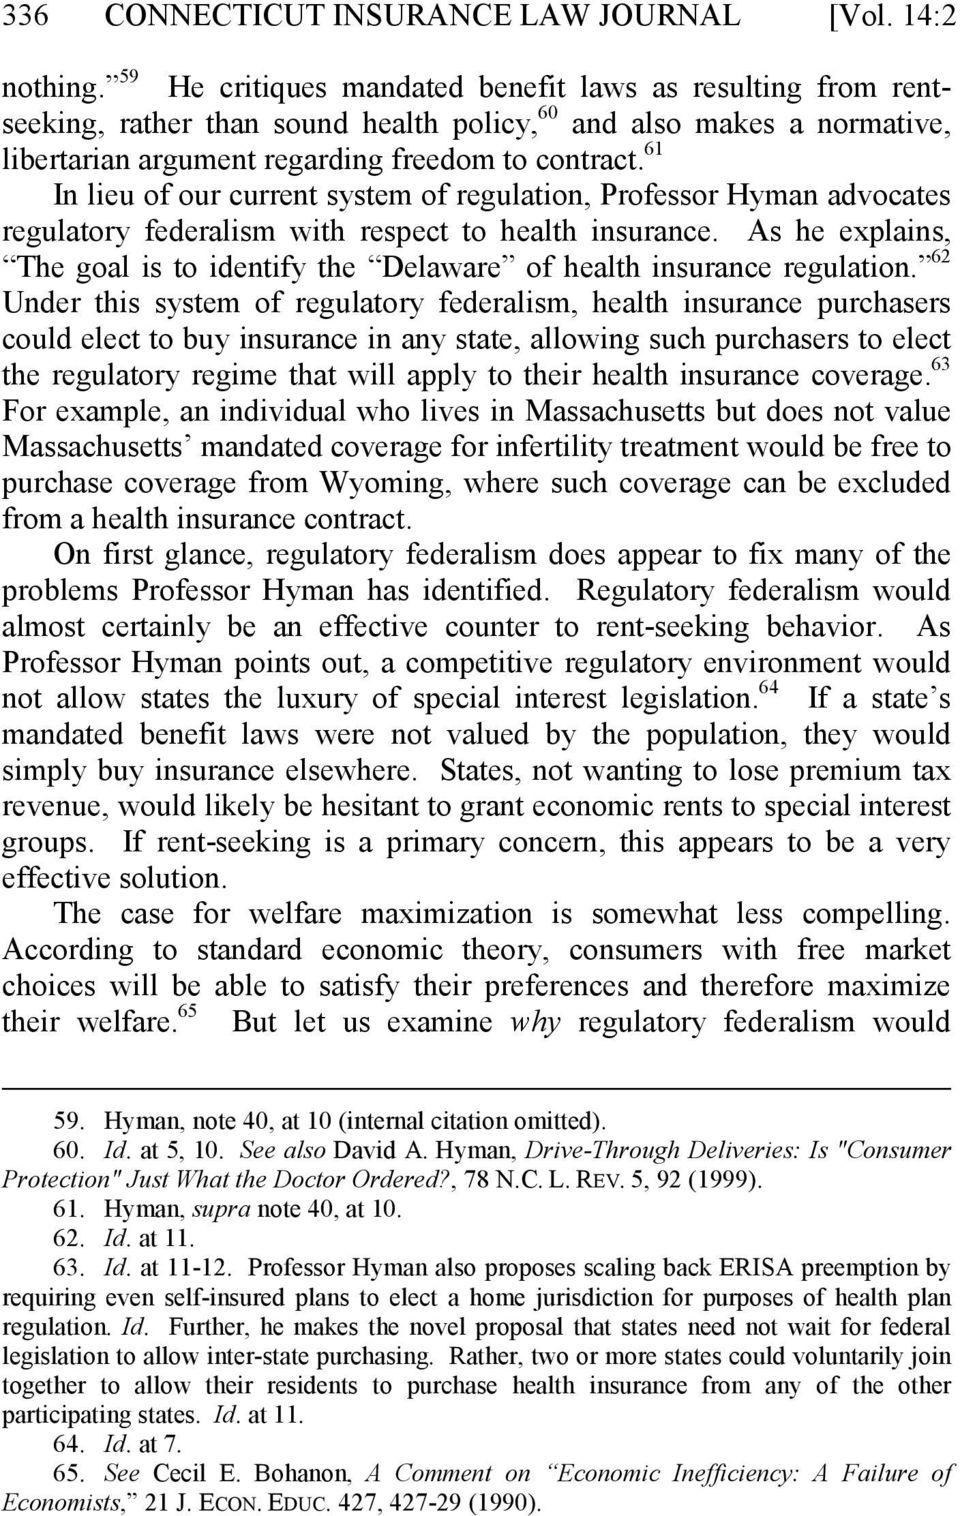 61 In lieu of our current system of regulation, Professor Hyman advocates regulatory federalism with respect to health insurance.